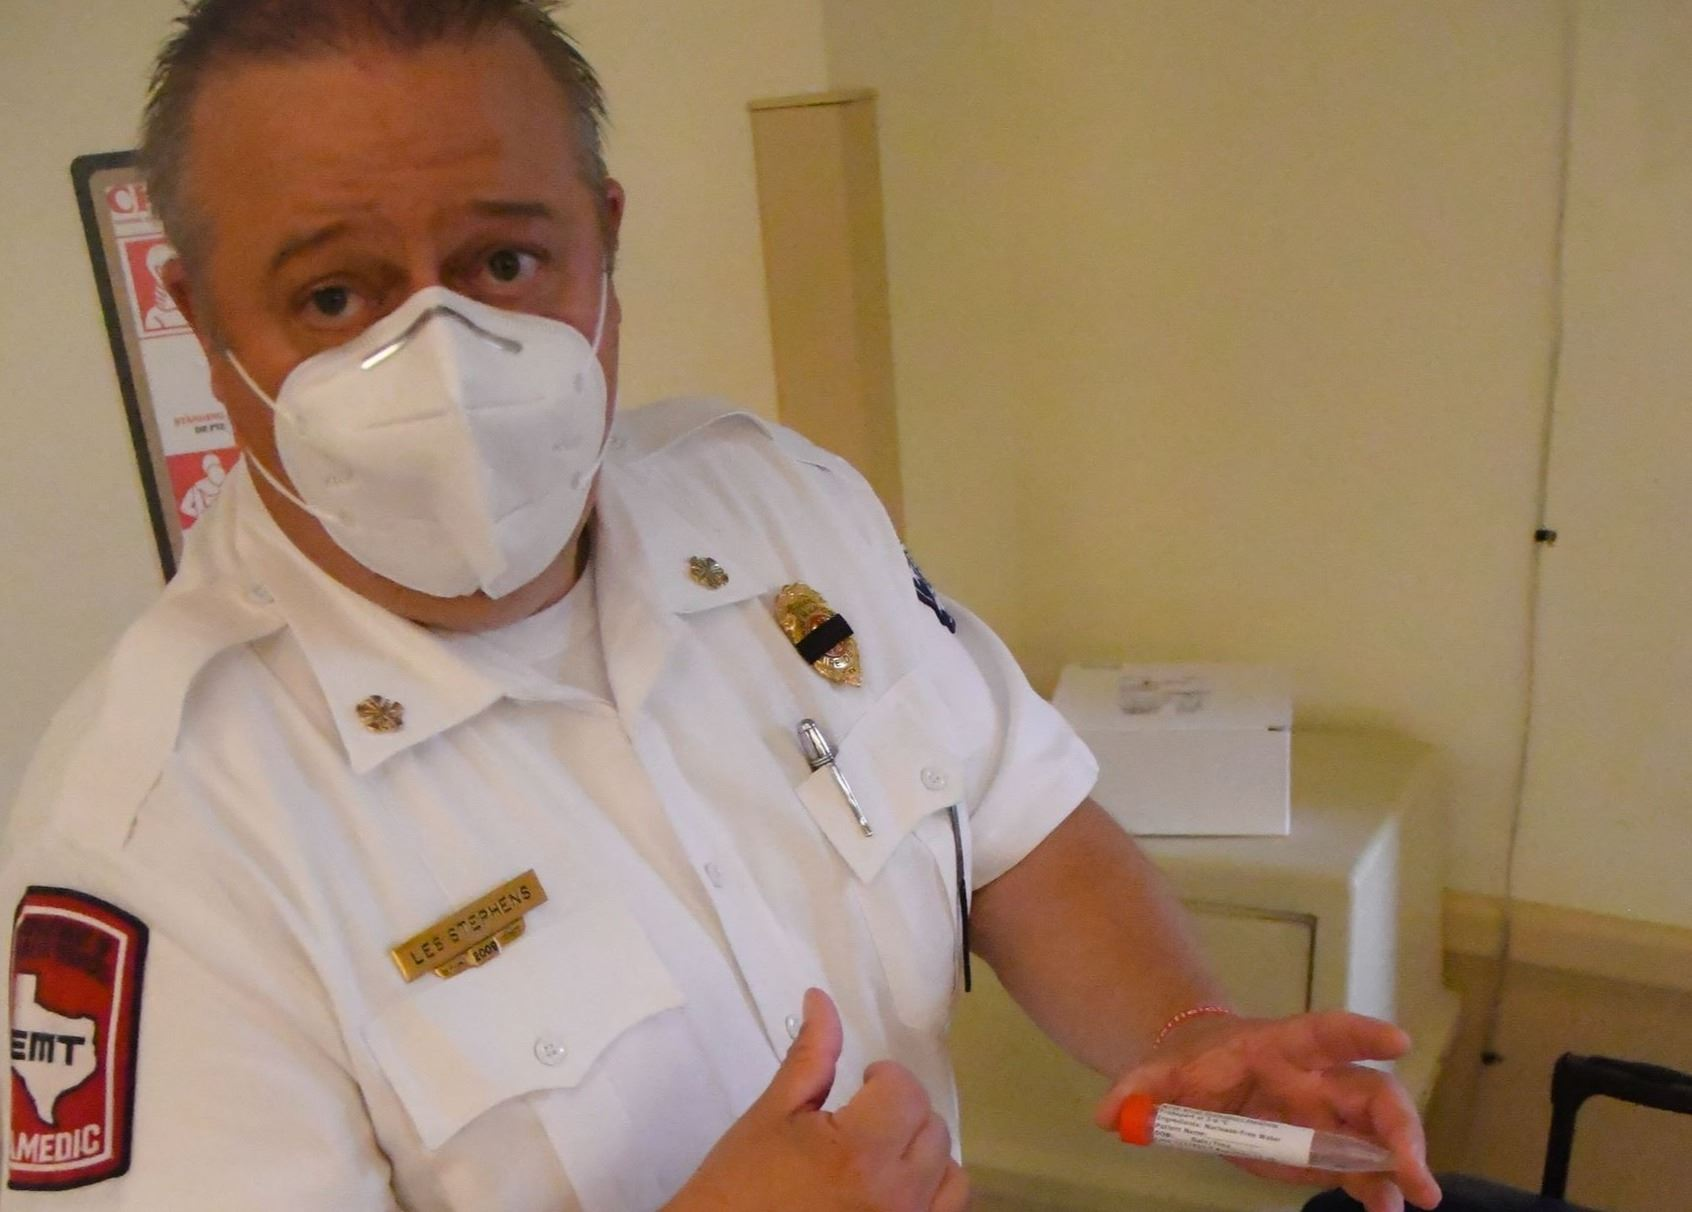 San Marcos Fire Chief Les Stephens holding a test tube with a label.